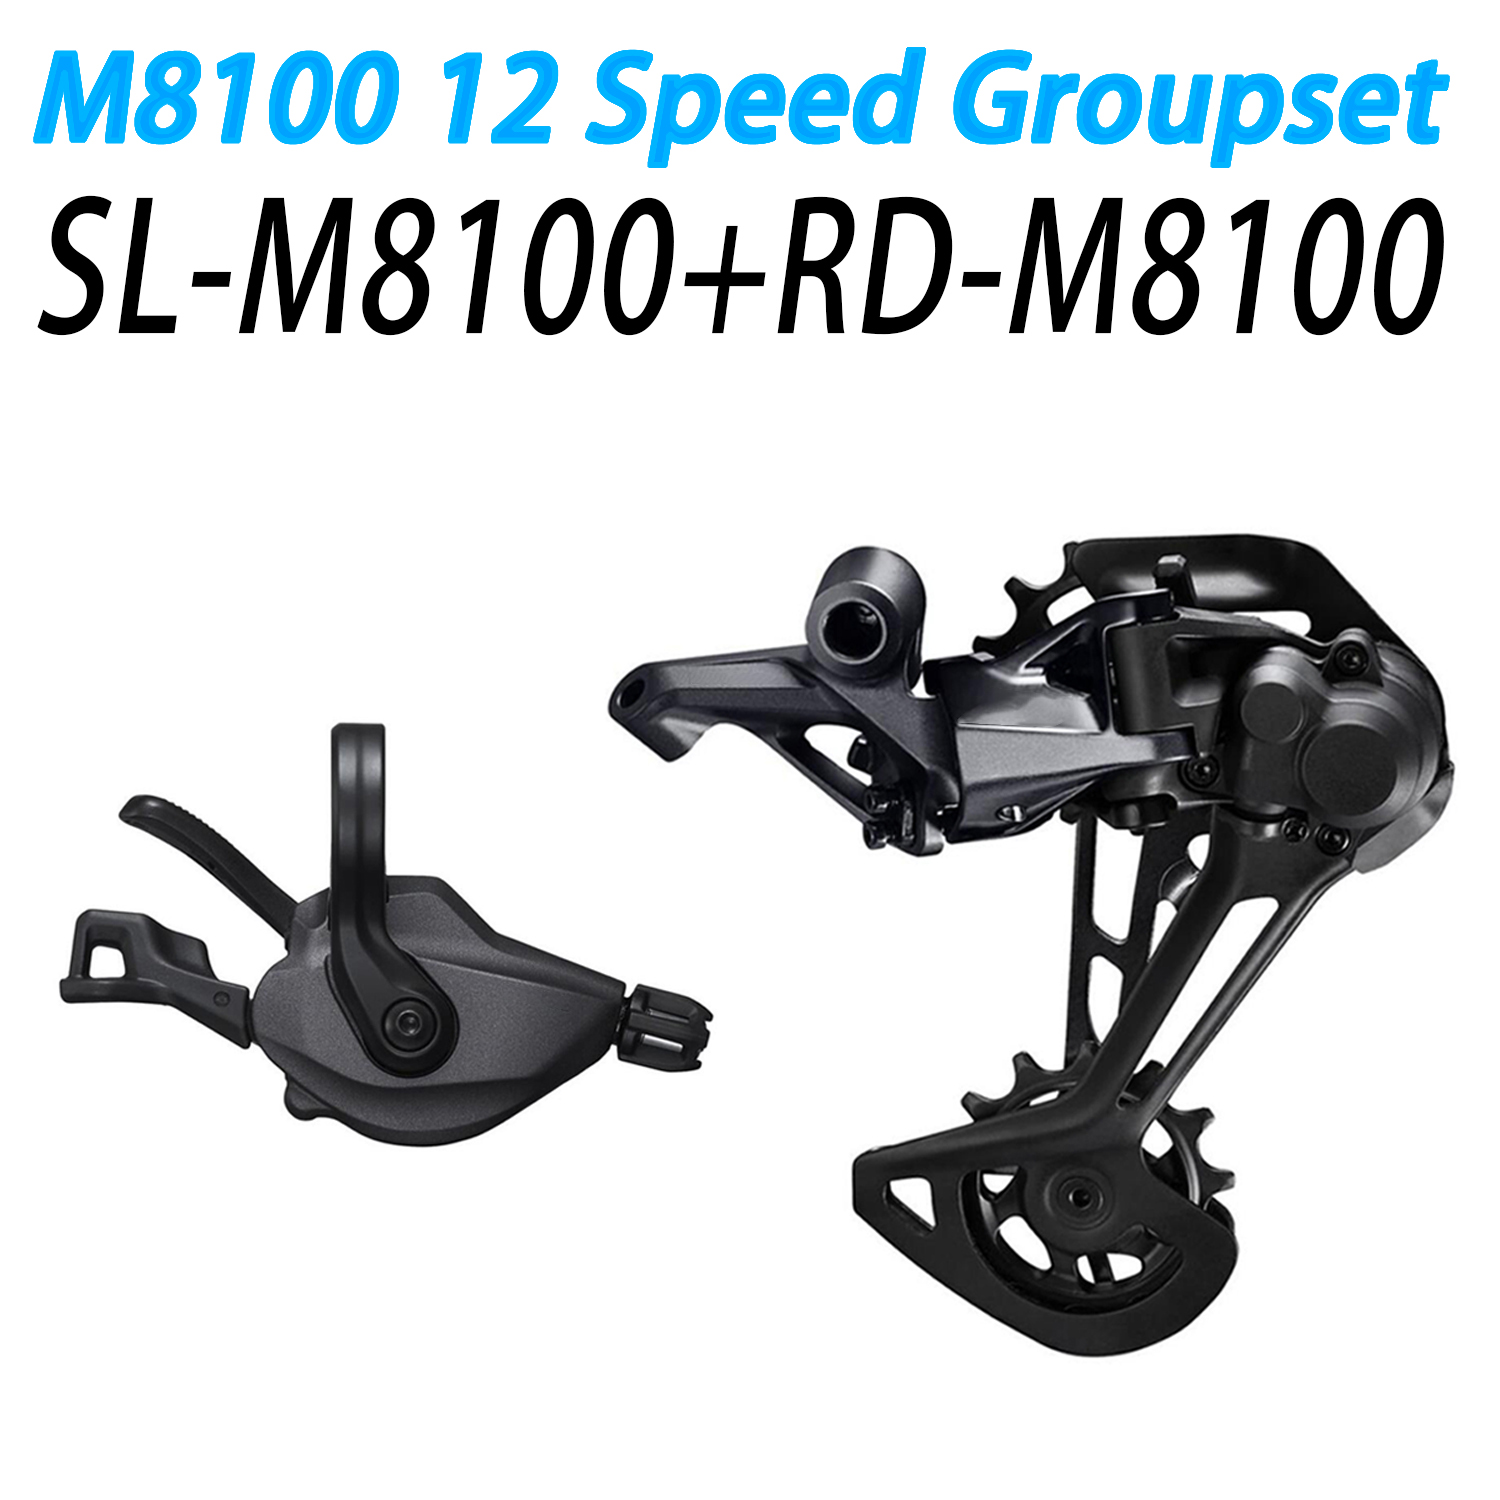 <font><b>XT</b></font> <font><b>M8100</b></font> Groupset Mountain Bike Groupset 1x12-Speed SL + RD <font><b>M8100</b></font> Rear Derailleur <font><b>m8100</b></font> Shifter Lever image